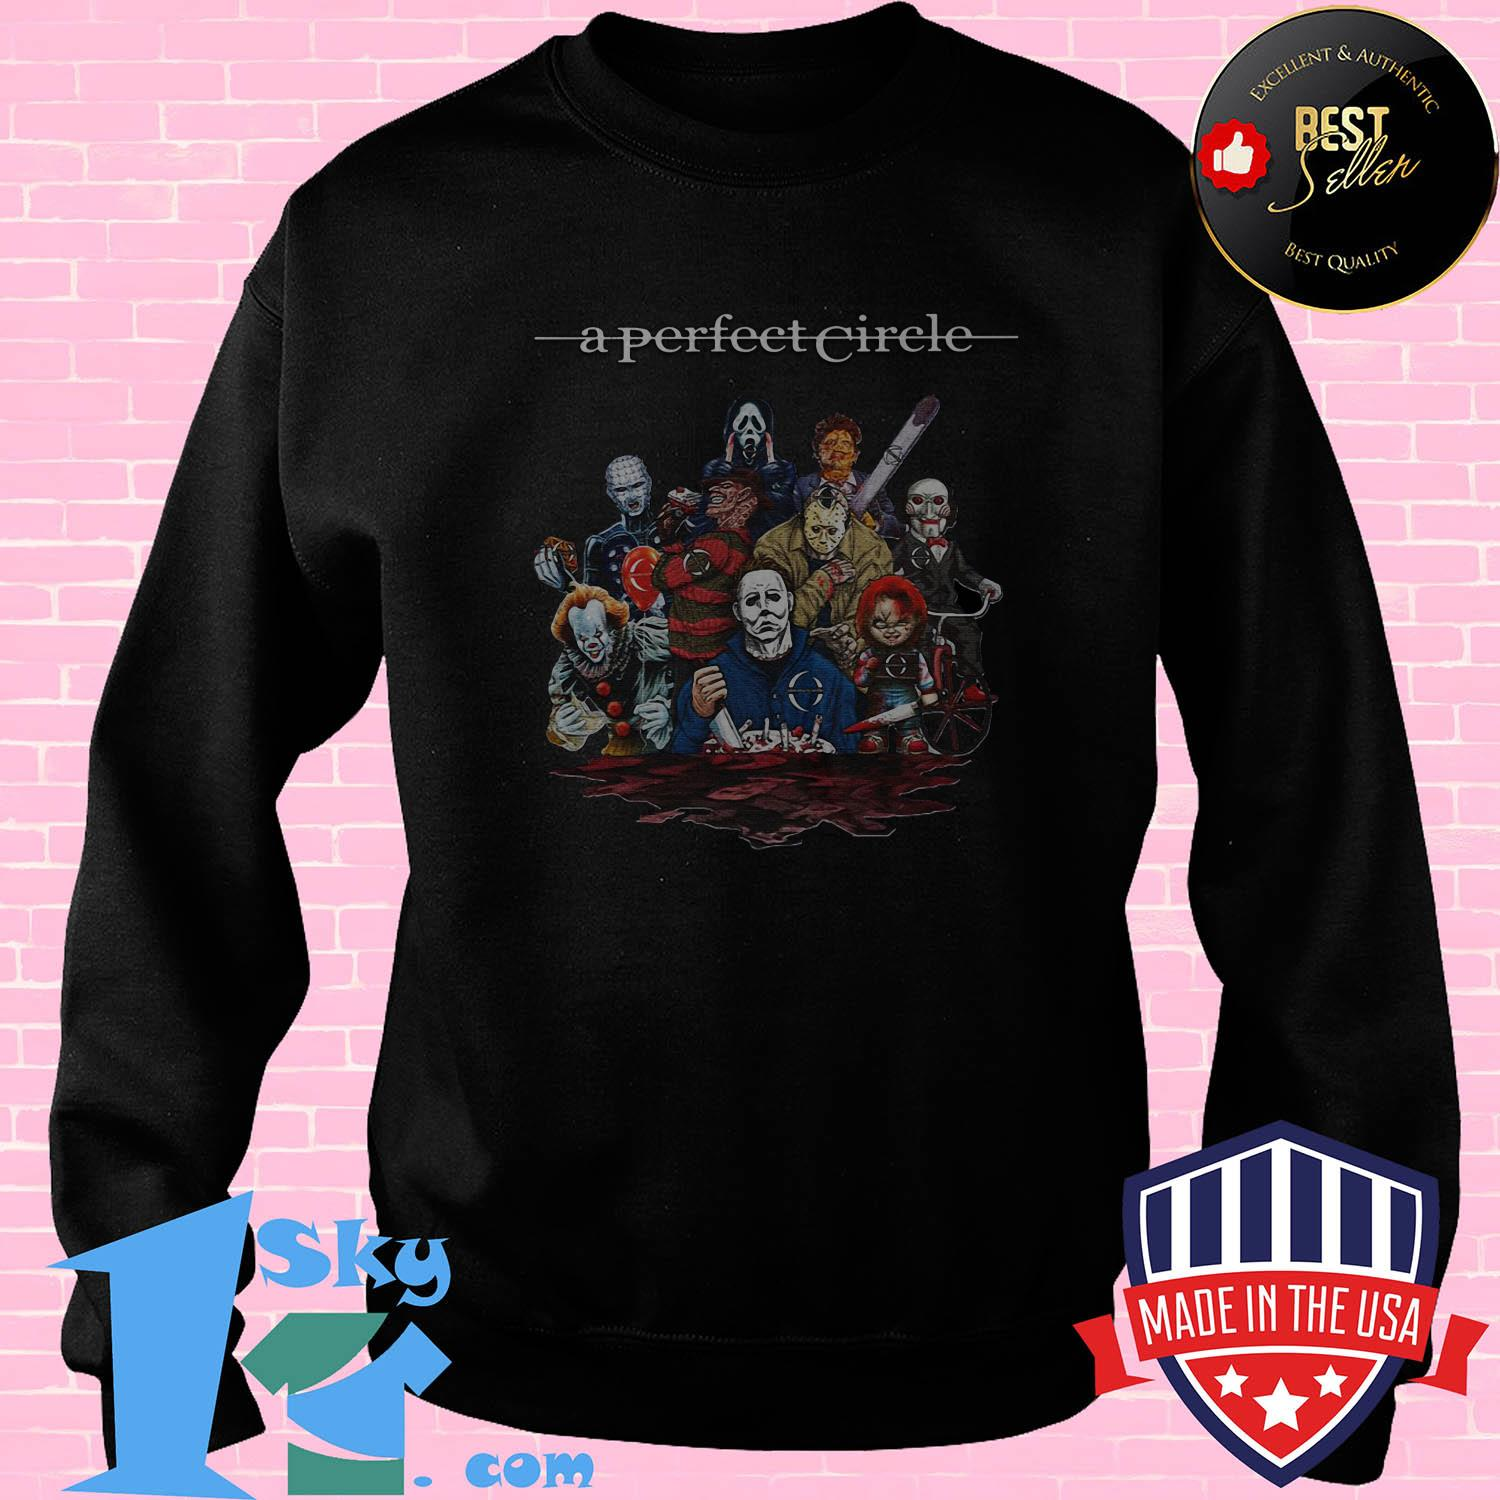 a perfect circle killers characters halloween sweatshirt - A perfect Circle Killers Characters Halloween shirt